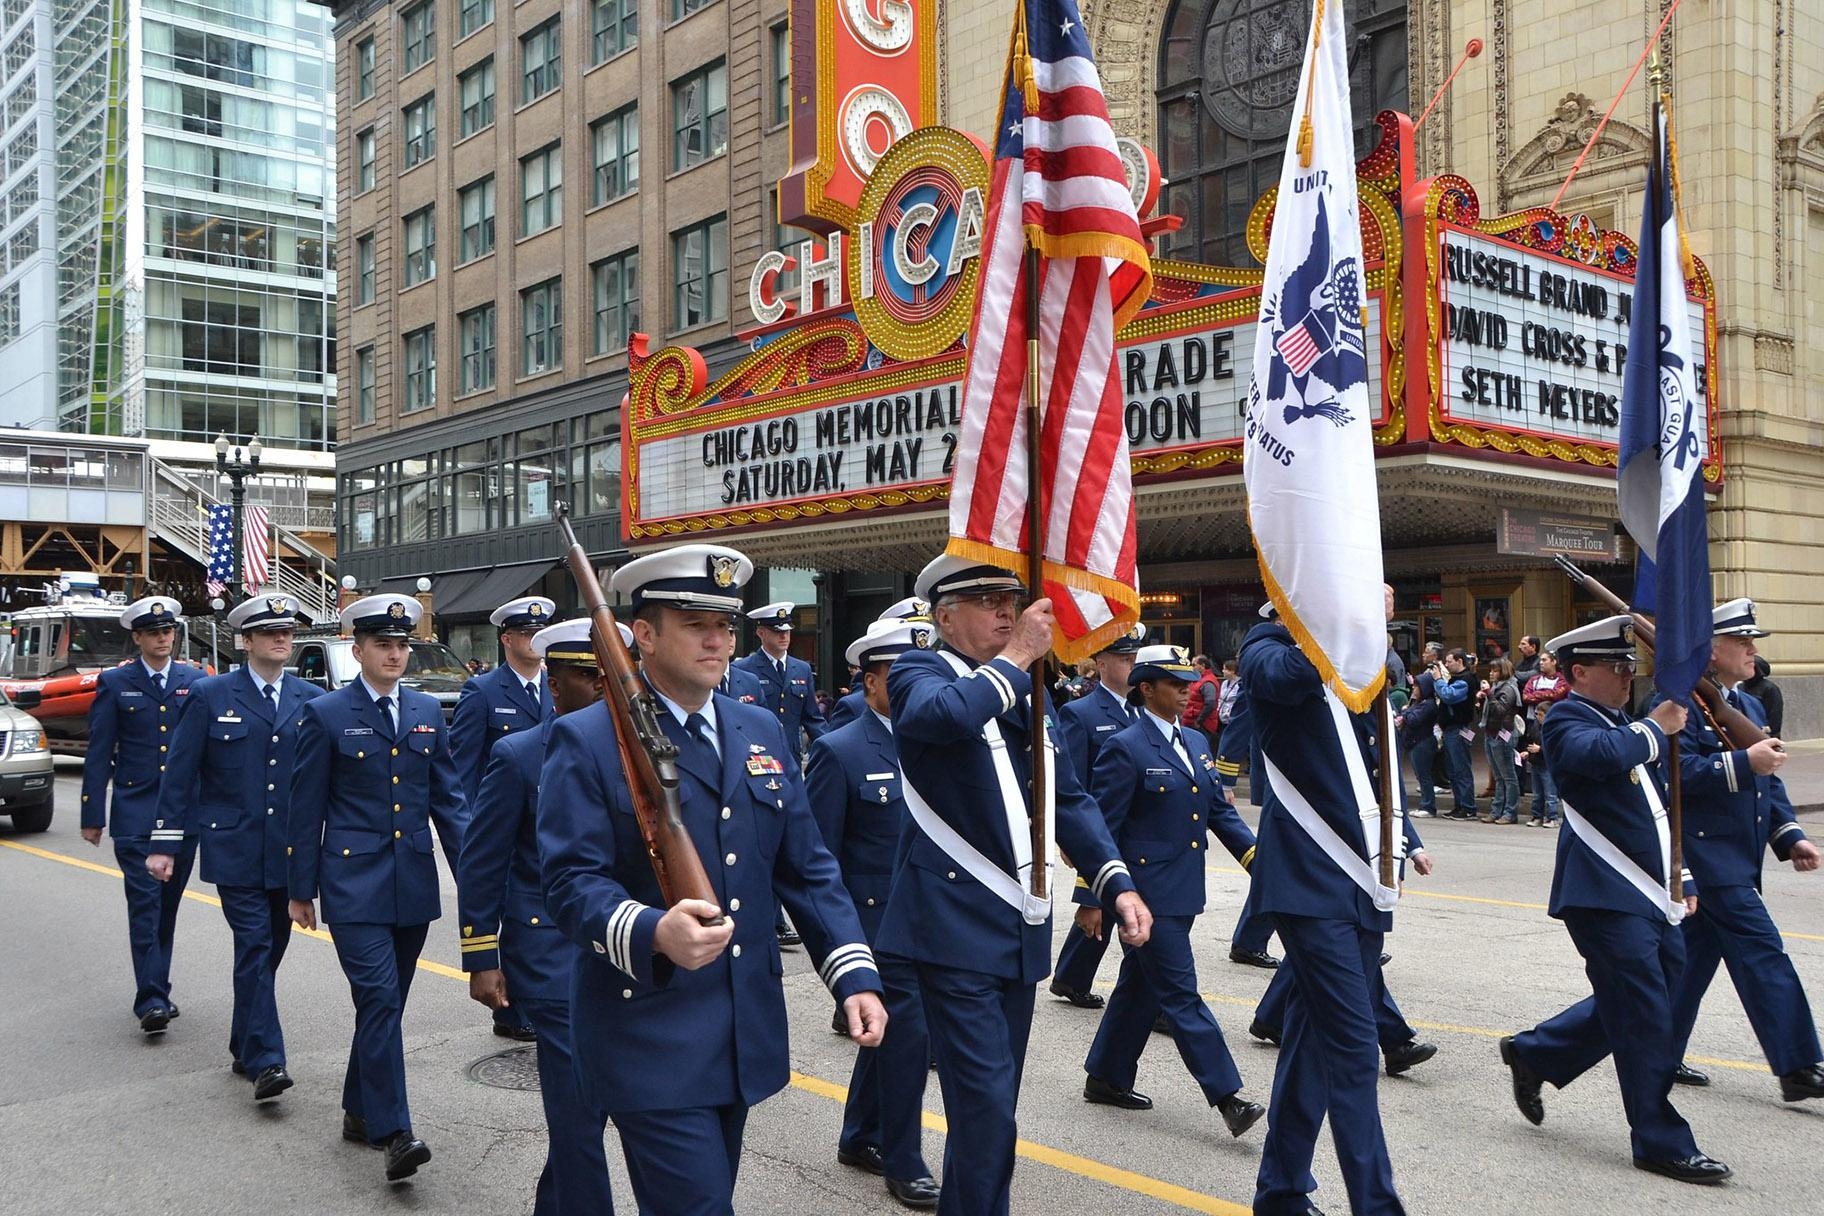 Members of the Coast Guard and Coast Guard Auxiliary march along State Street during the Chicago Memorial Day Parade on May 25, 2013. (Coast Guard News / Flickr)